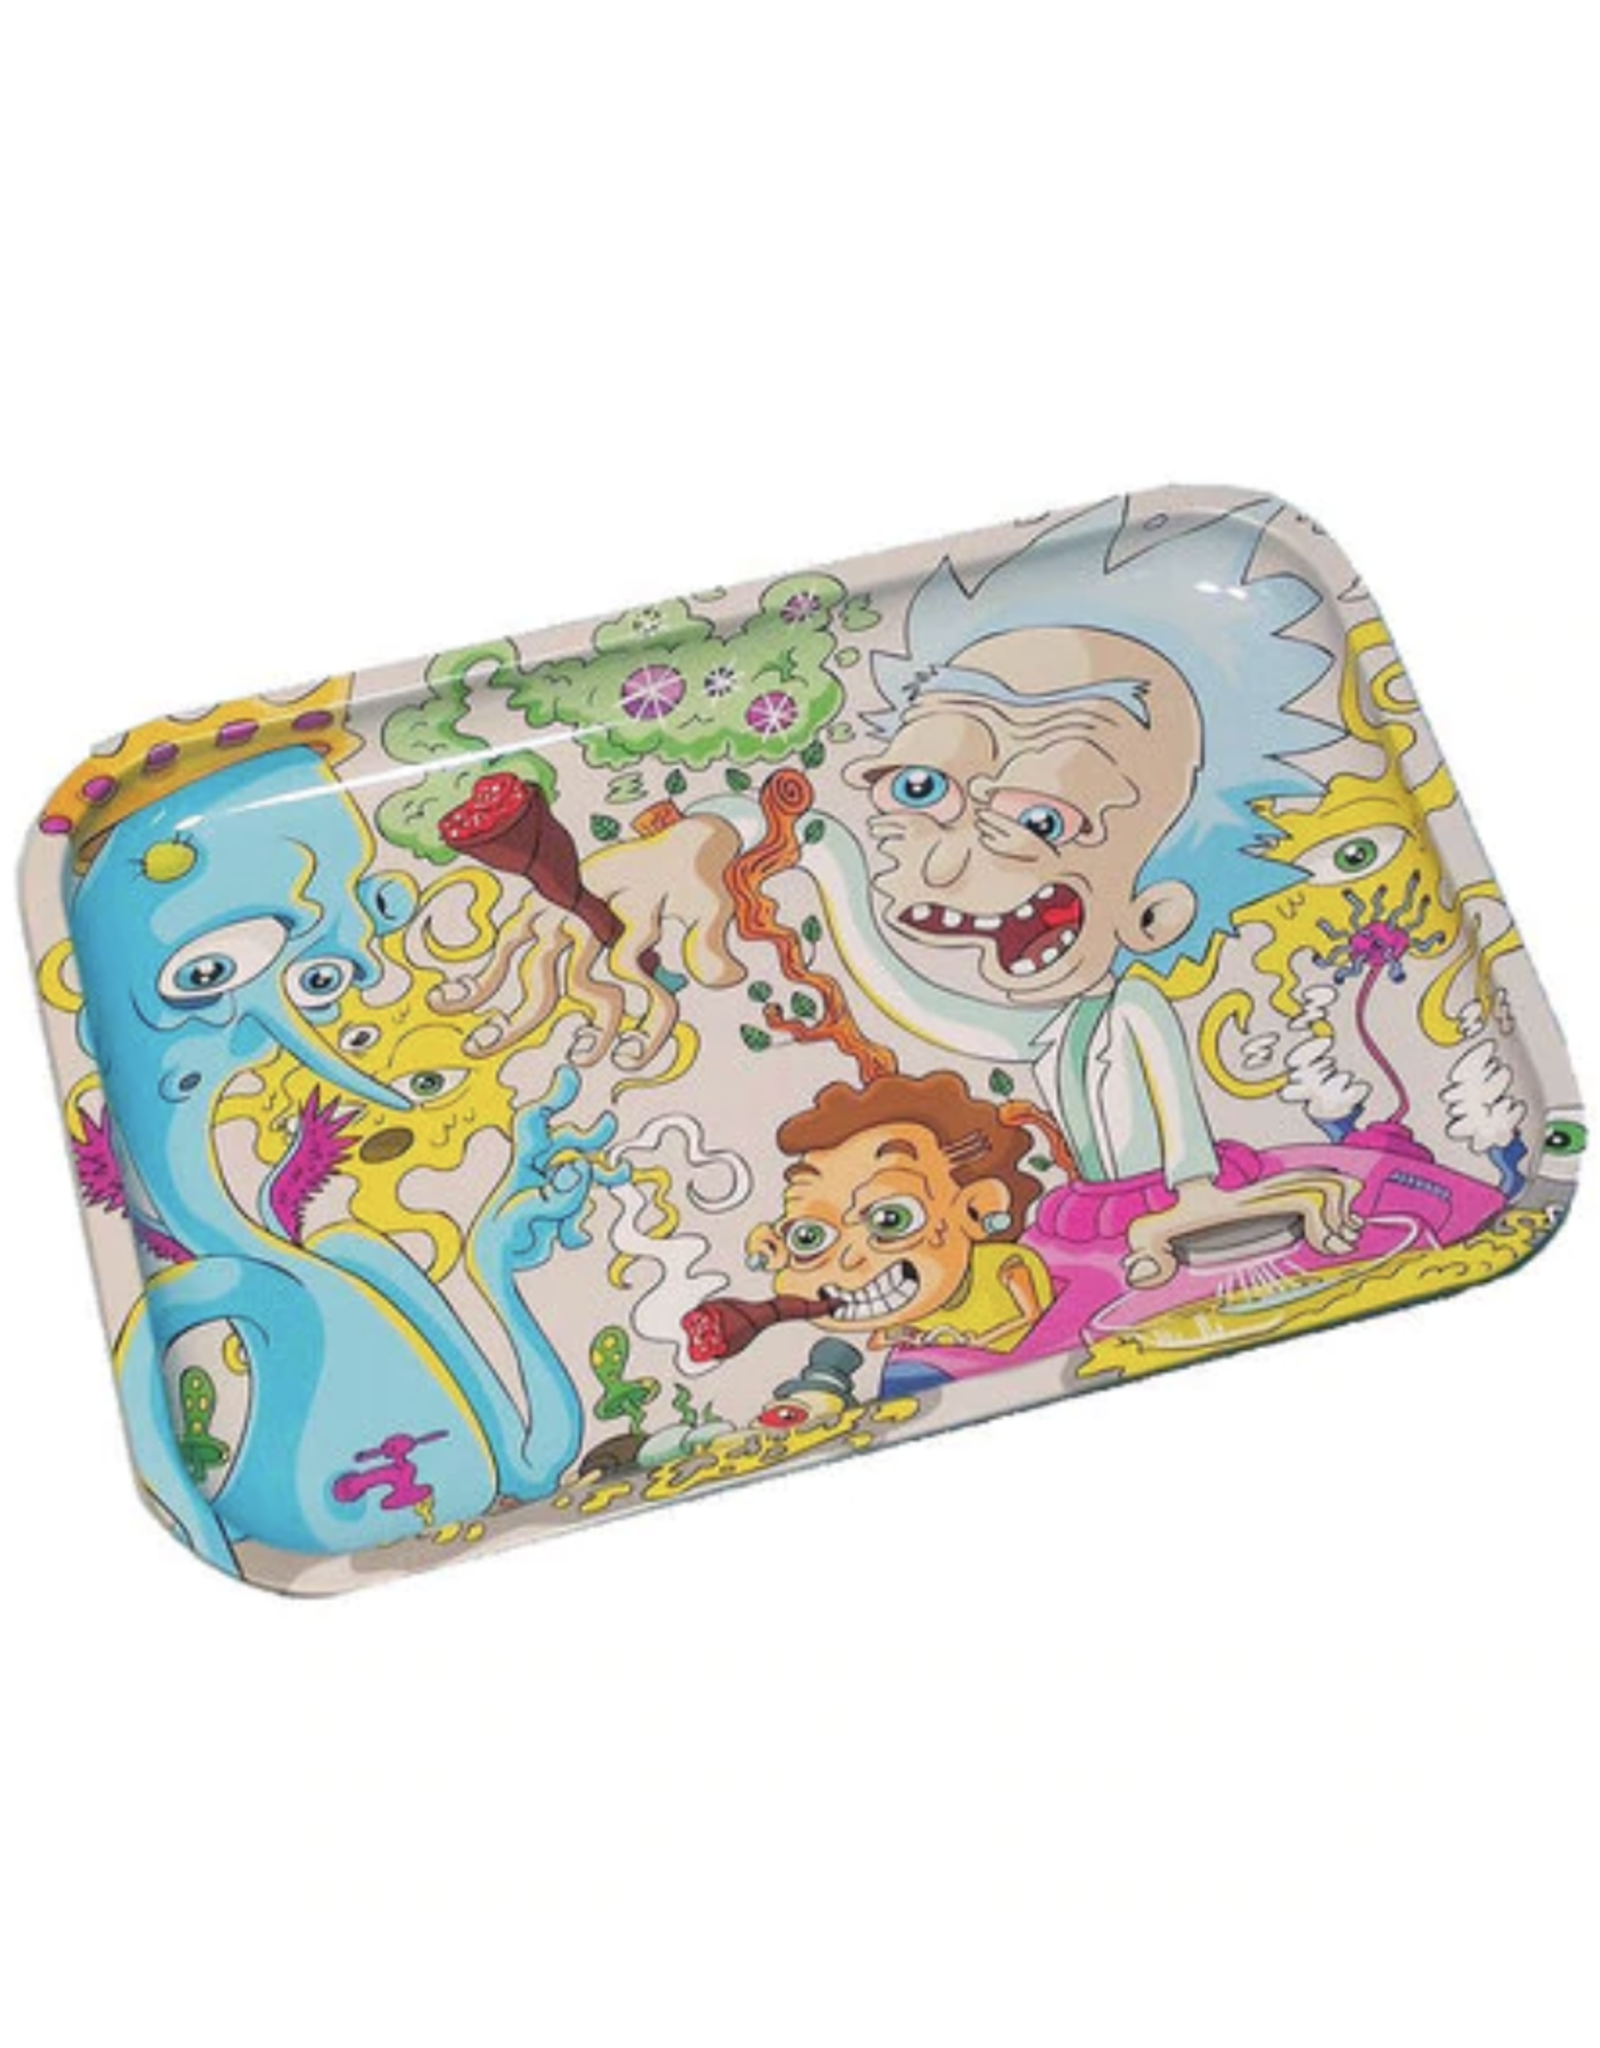 """Dunkees 13"""" x 9"""" Rolling Tray - Get Swifty"""